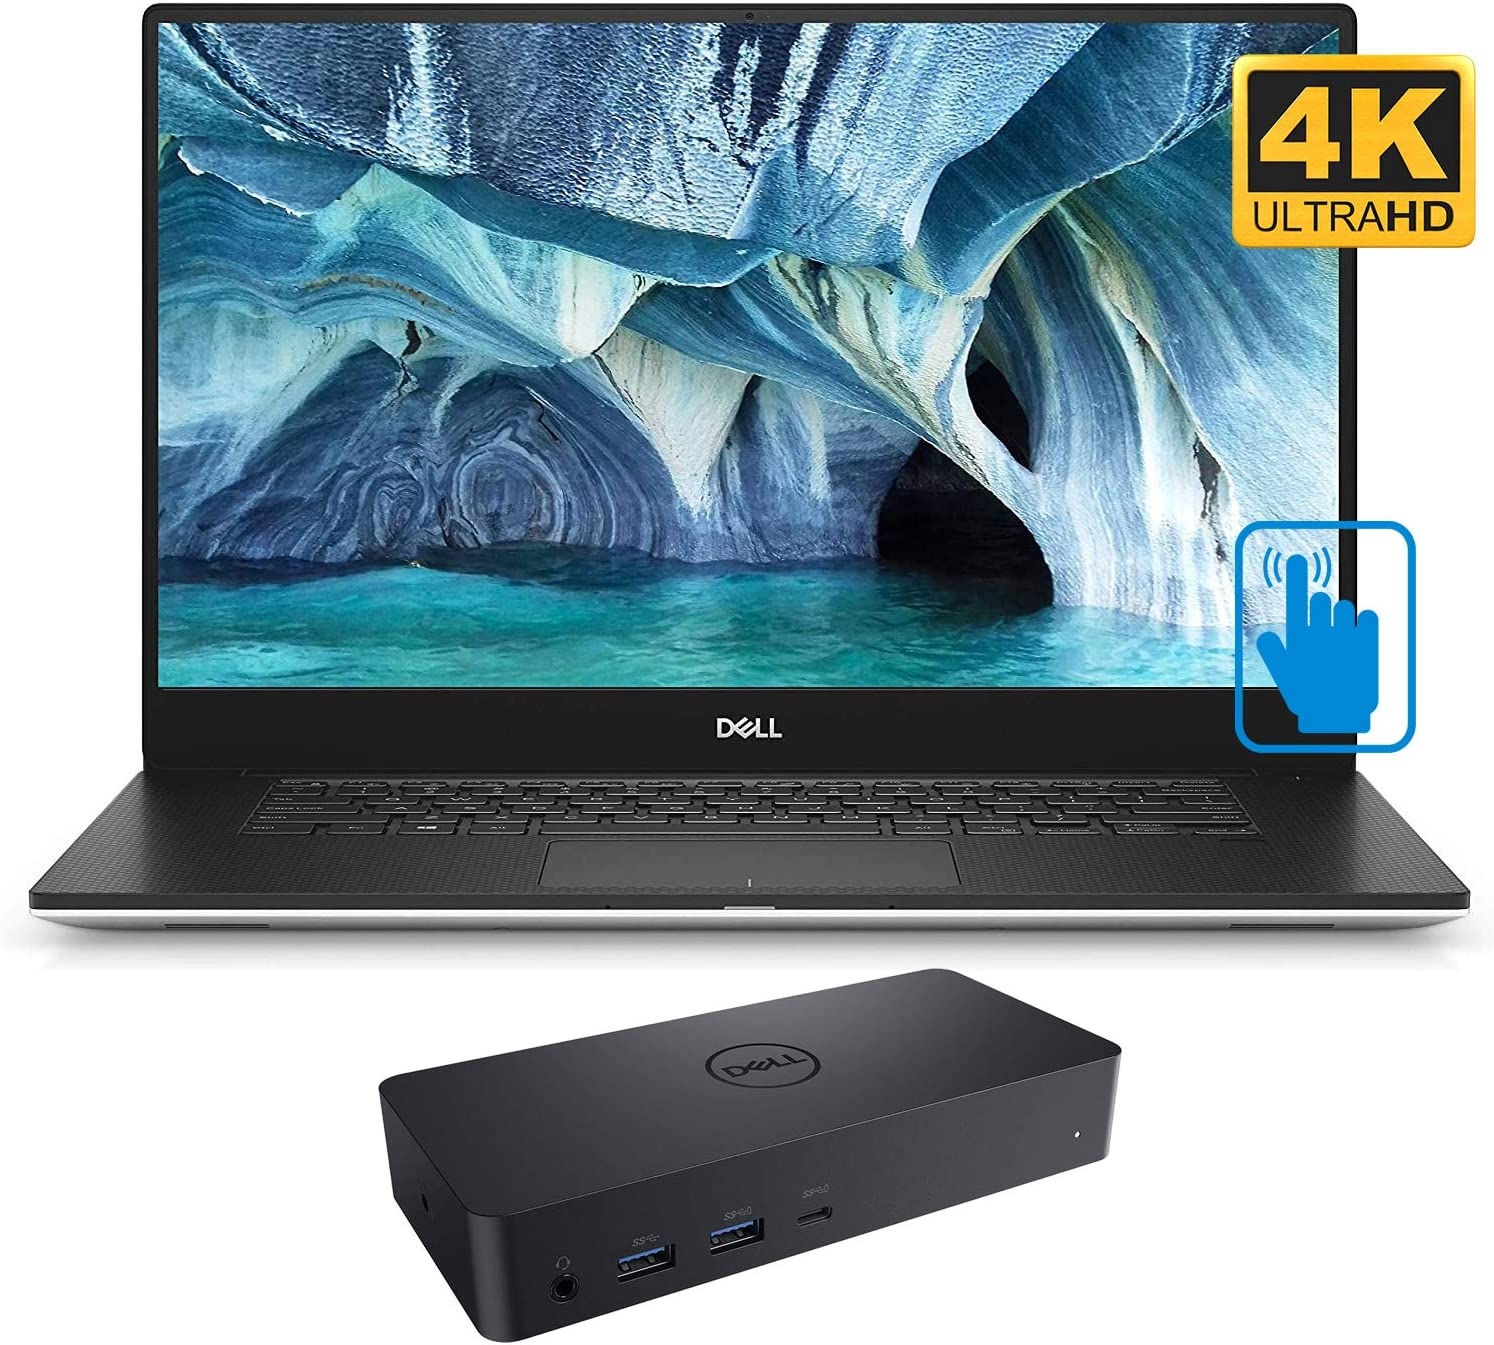 """Dell XPS 9570 Home and Business Laptop (Intel i7-8750H 6-Core, 64GB RAM, 1TB m.2 SATA SSD, NVIDIA GTX 1050 Ti, 15.6"""" Touch 4K UHD (3840x2160), WiFi, Bluetooth, Webcam, Win 10 Pro) with D6000 Dock"""